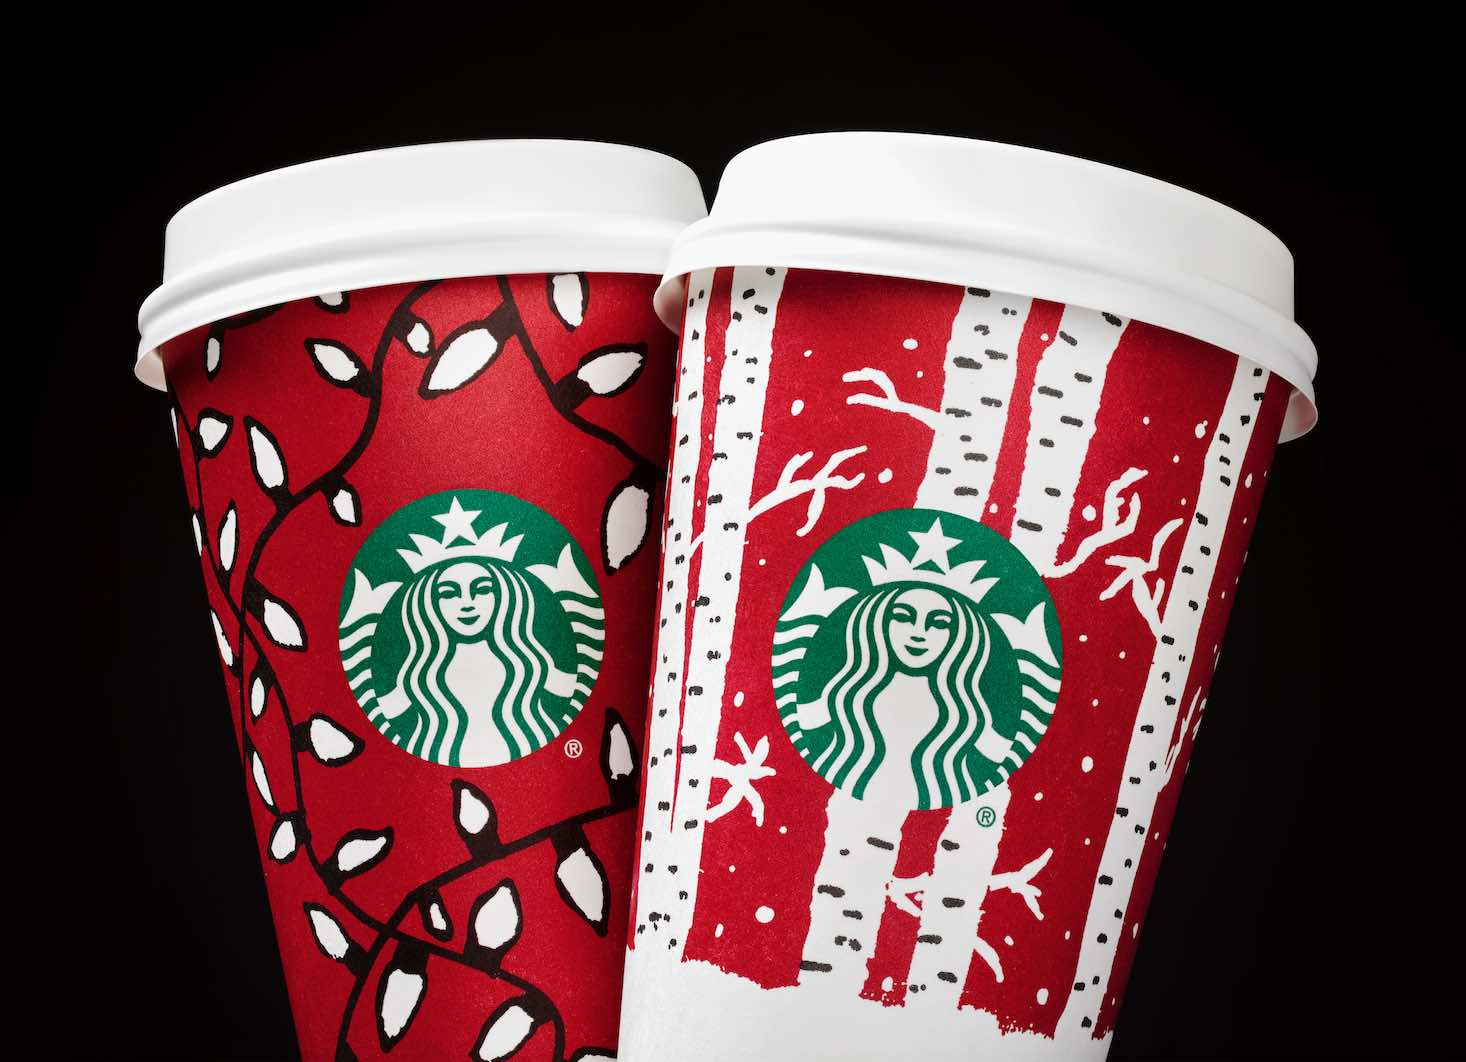 starbucks-customers-designed-festive-cups-aspirantsg